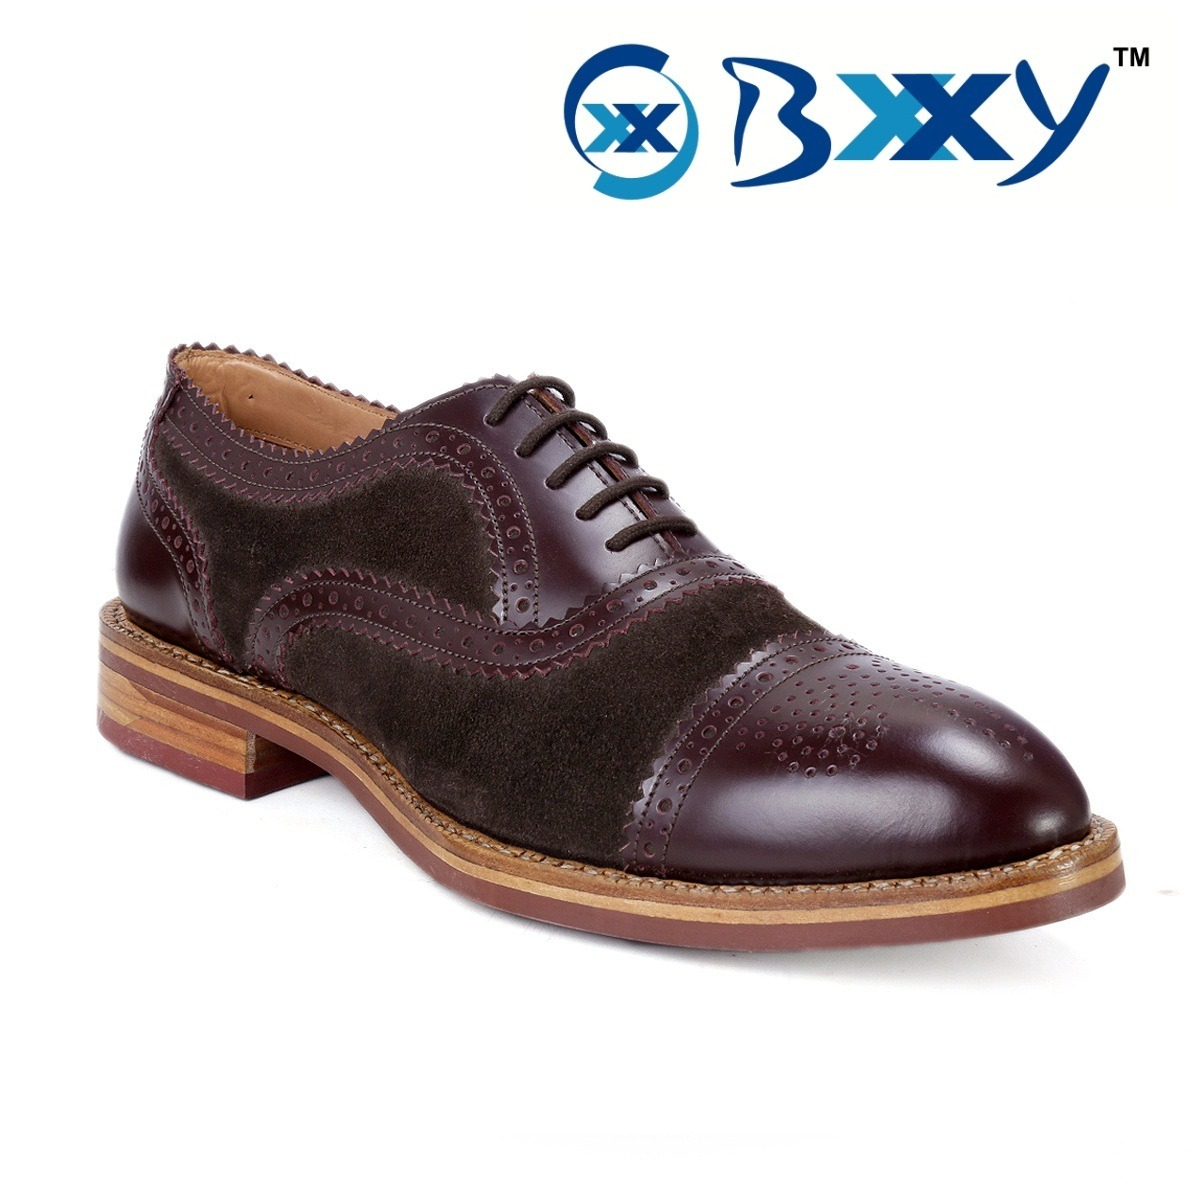 GOODYEAR WELTED SHOE ON DAI NITE SOLE